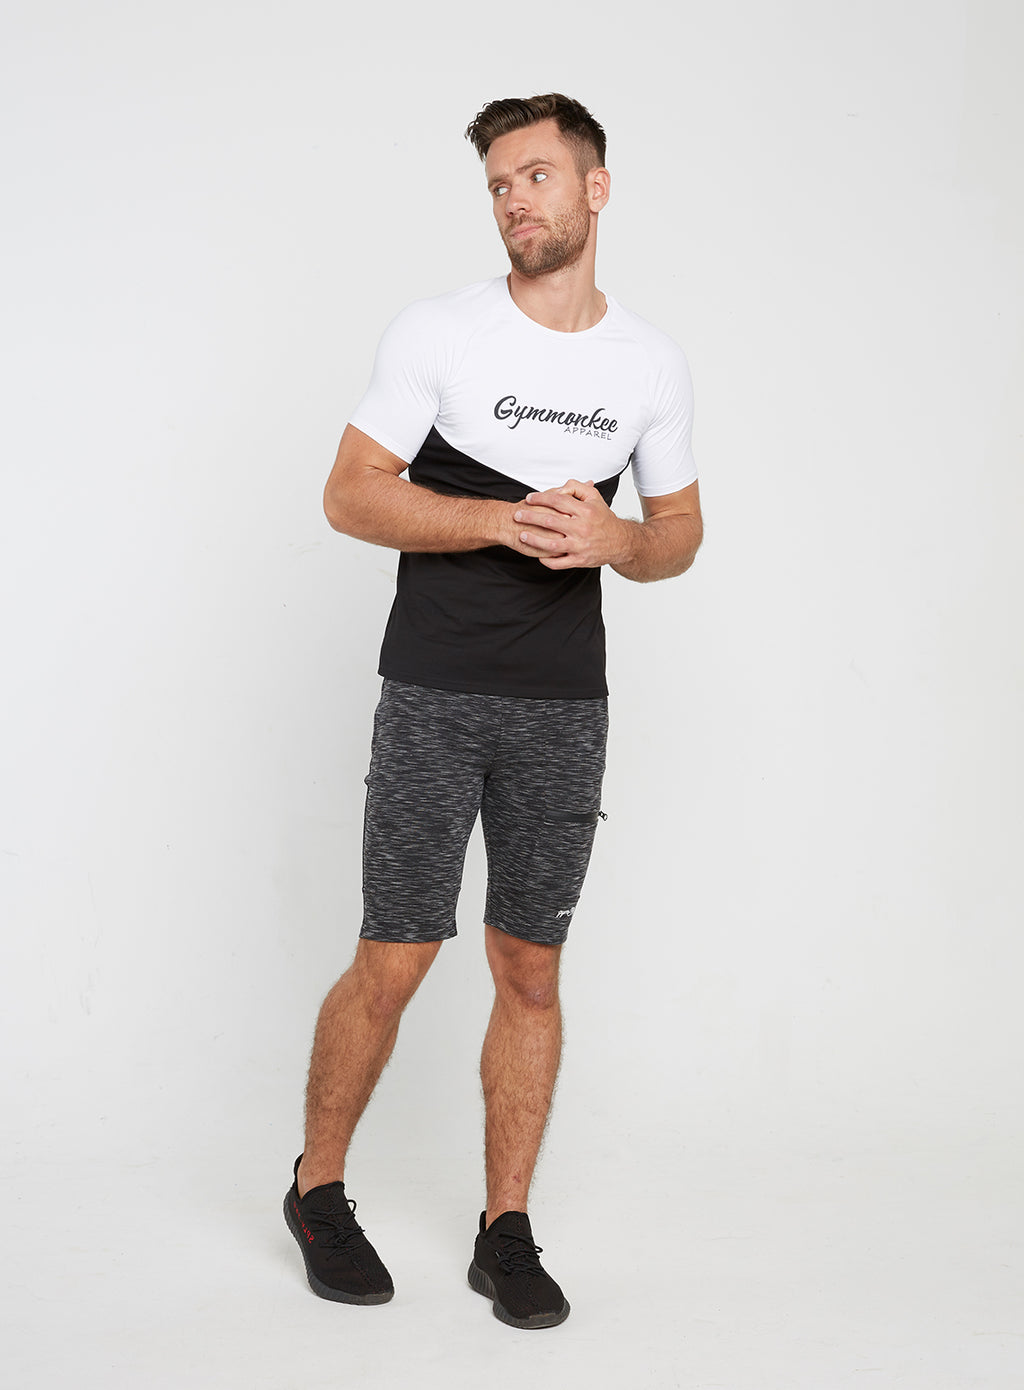 Gym Monkee - Black and White Tee FRONT MOVING